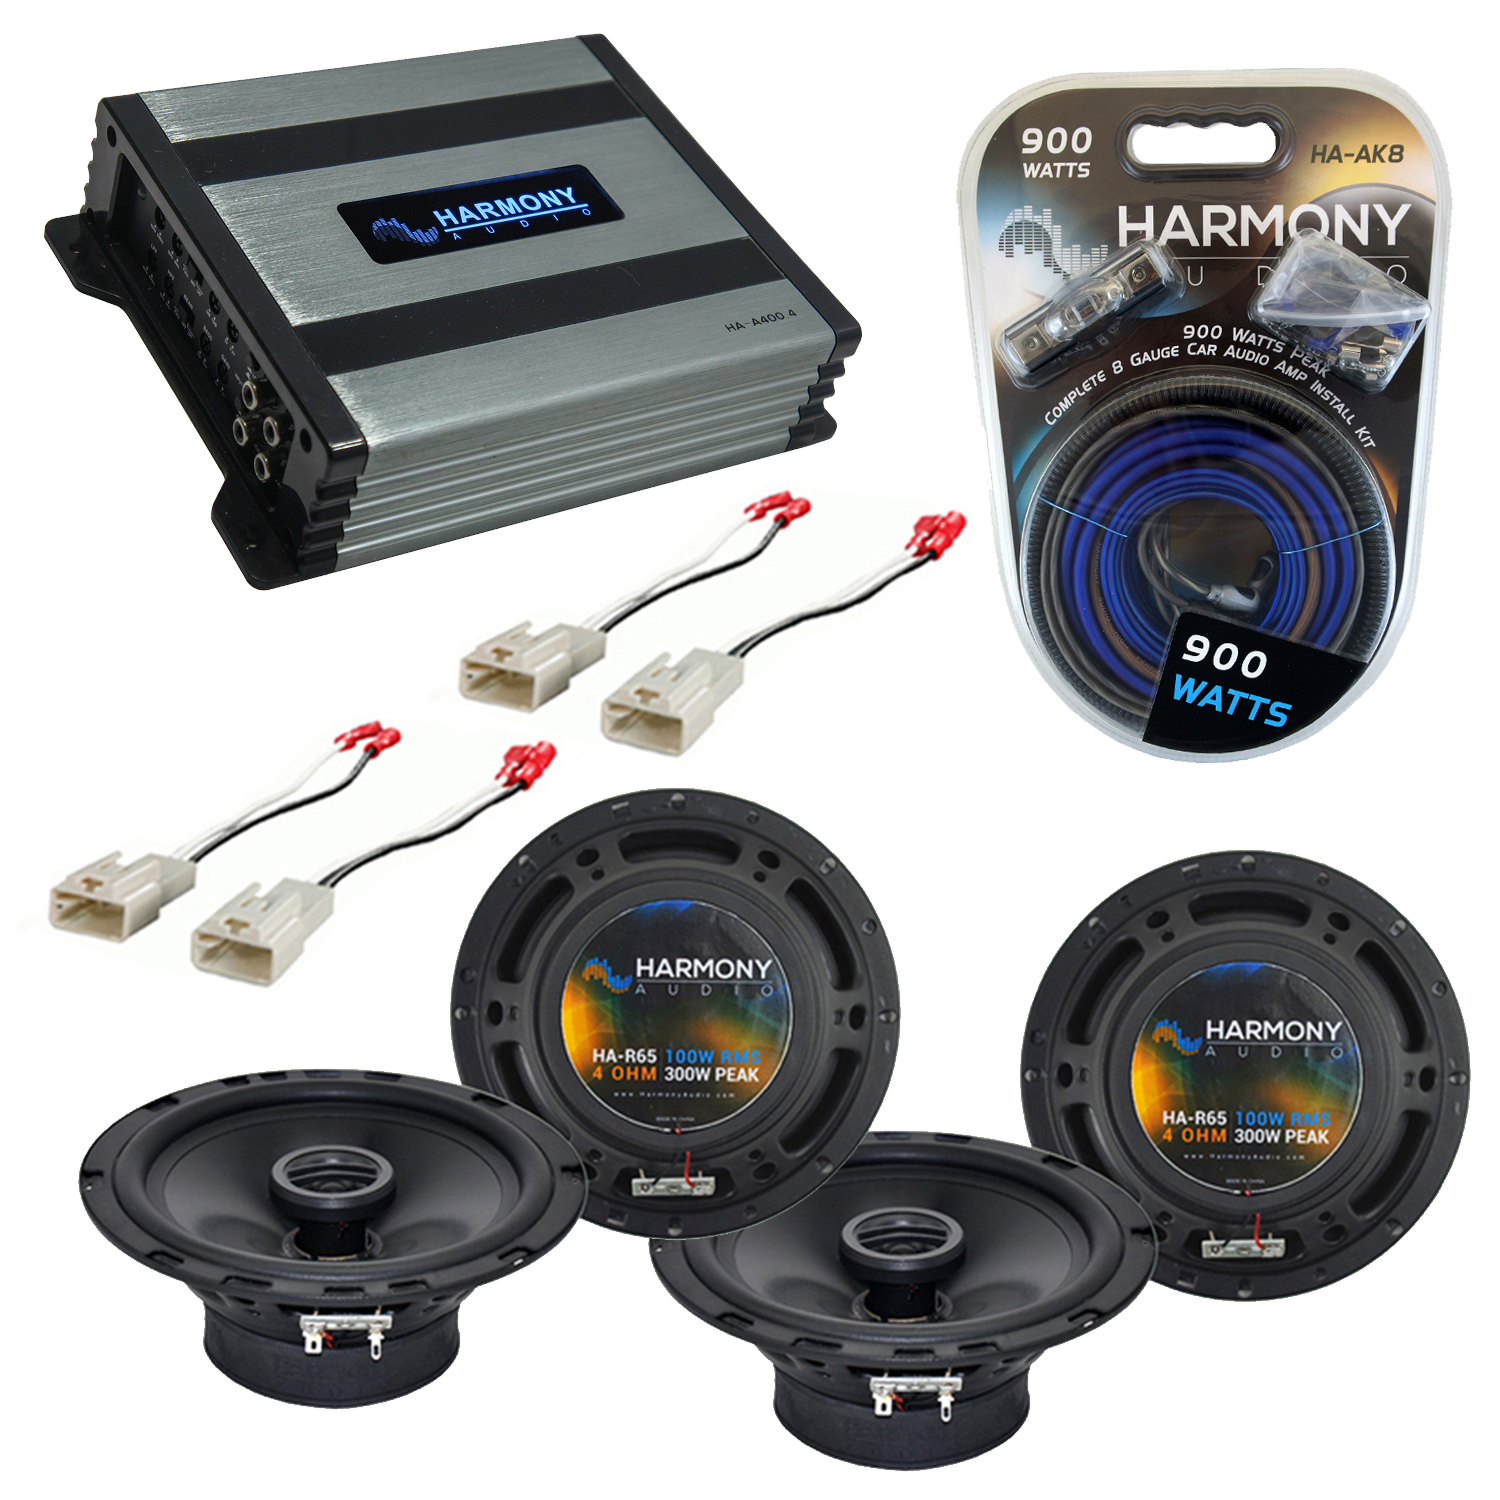 Compatible with Toyota Matrix 2003-2008 Factory Speaker Replacement Harmony (2) R65 & Harmony HA-A400.4 Amp